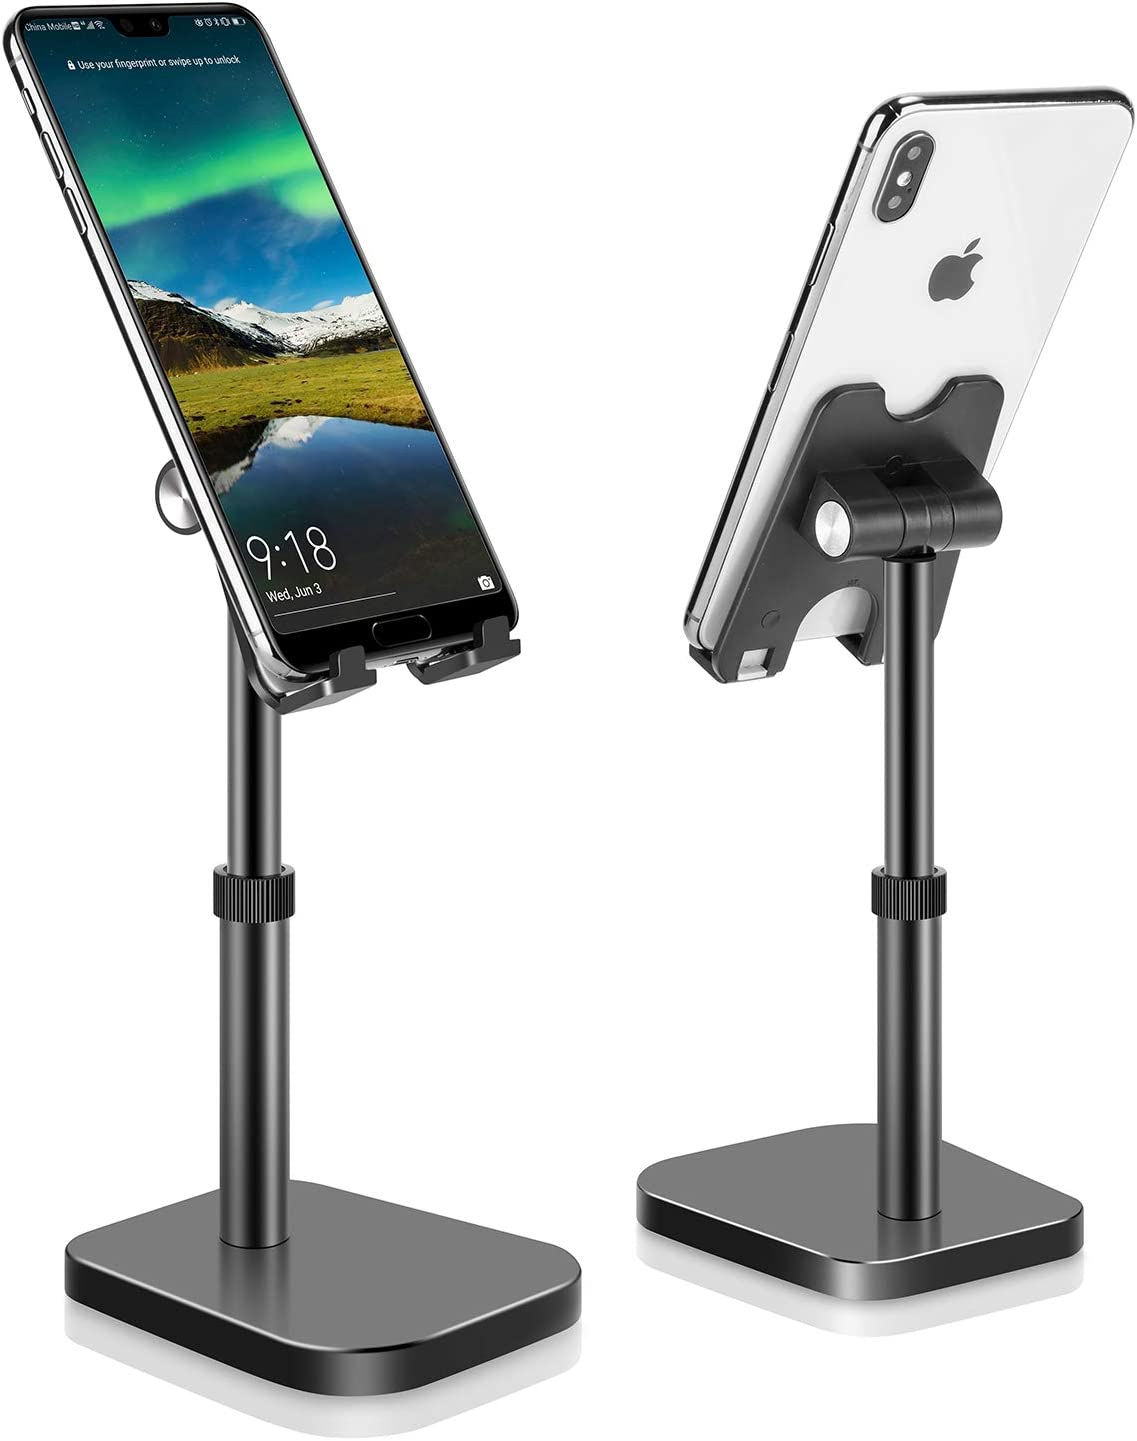 Cell Phone Stand, Phone Stand for Desk Height Adjustable, Tablet Stand Holder Desktop Phone Holder for Desk Compatible with All Mobile Phones,iPad, (Black)